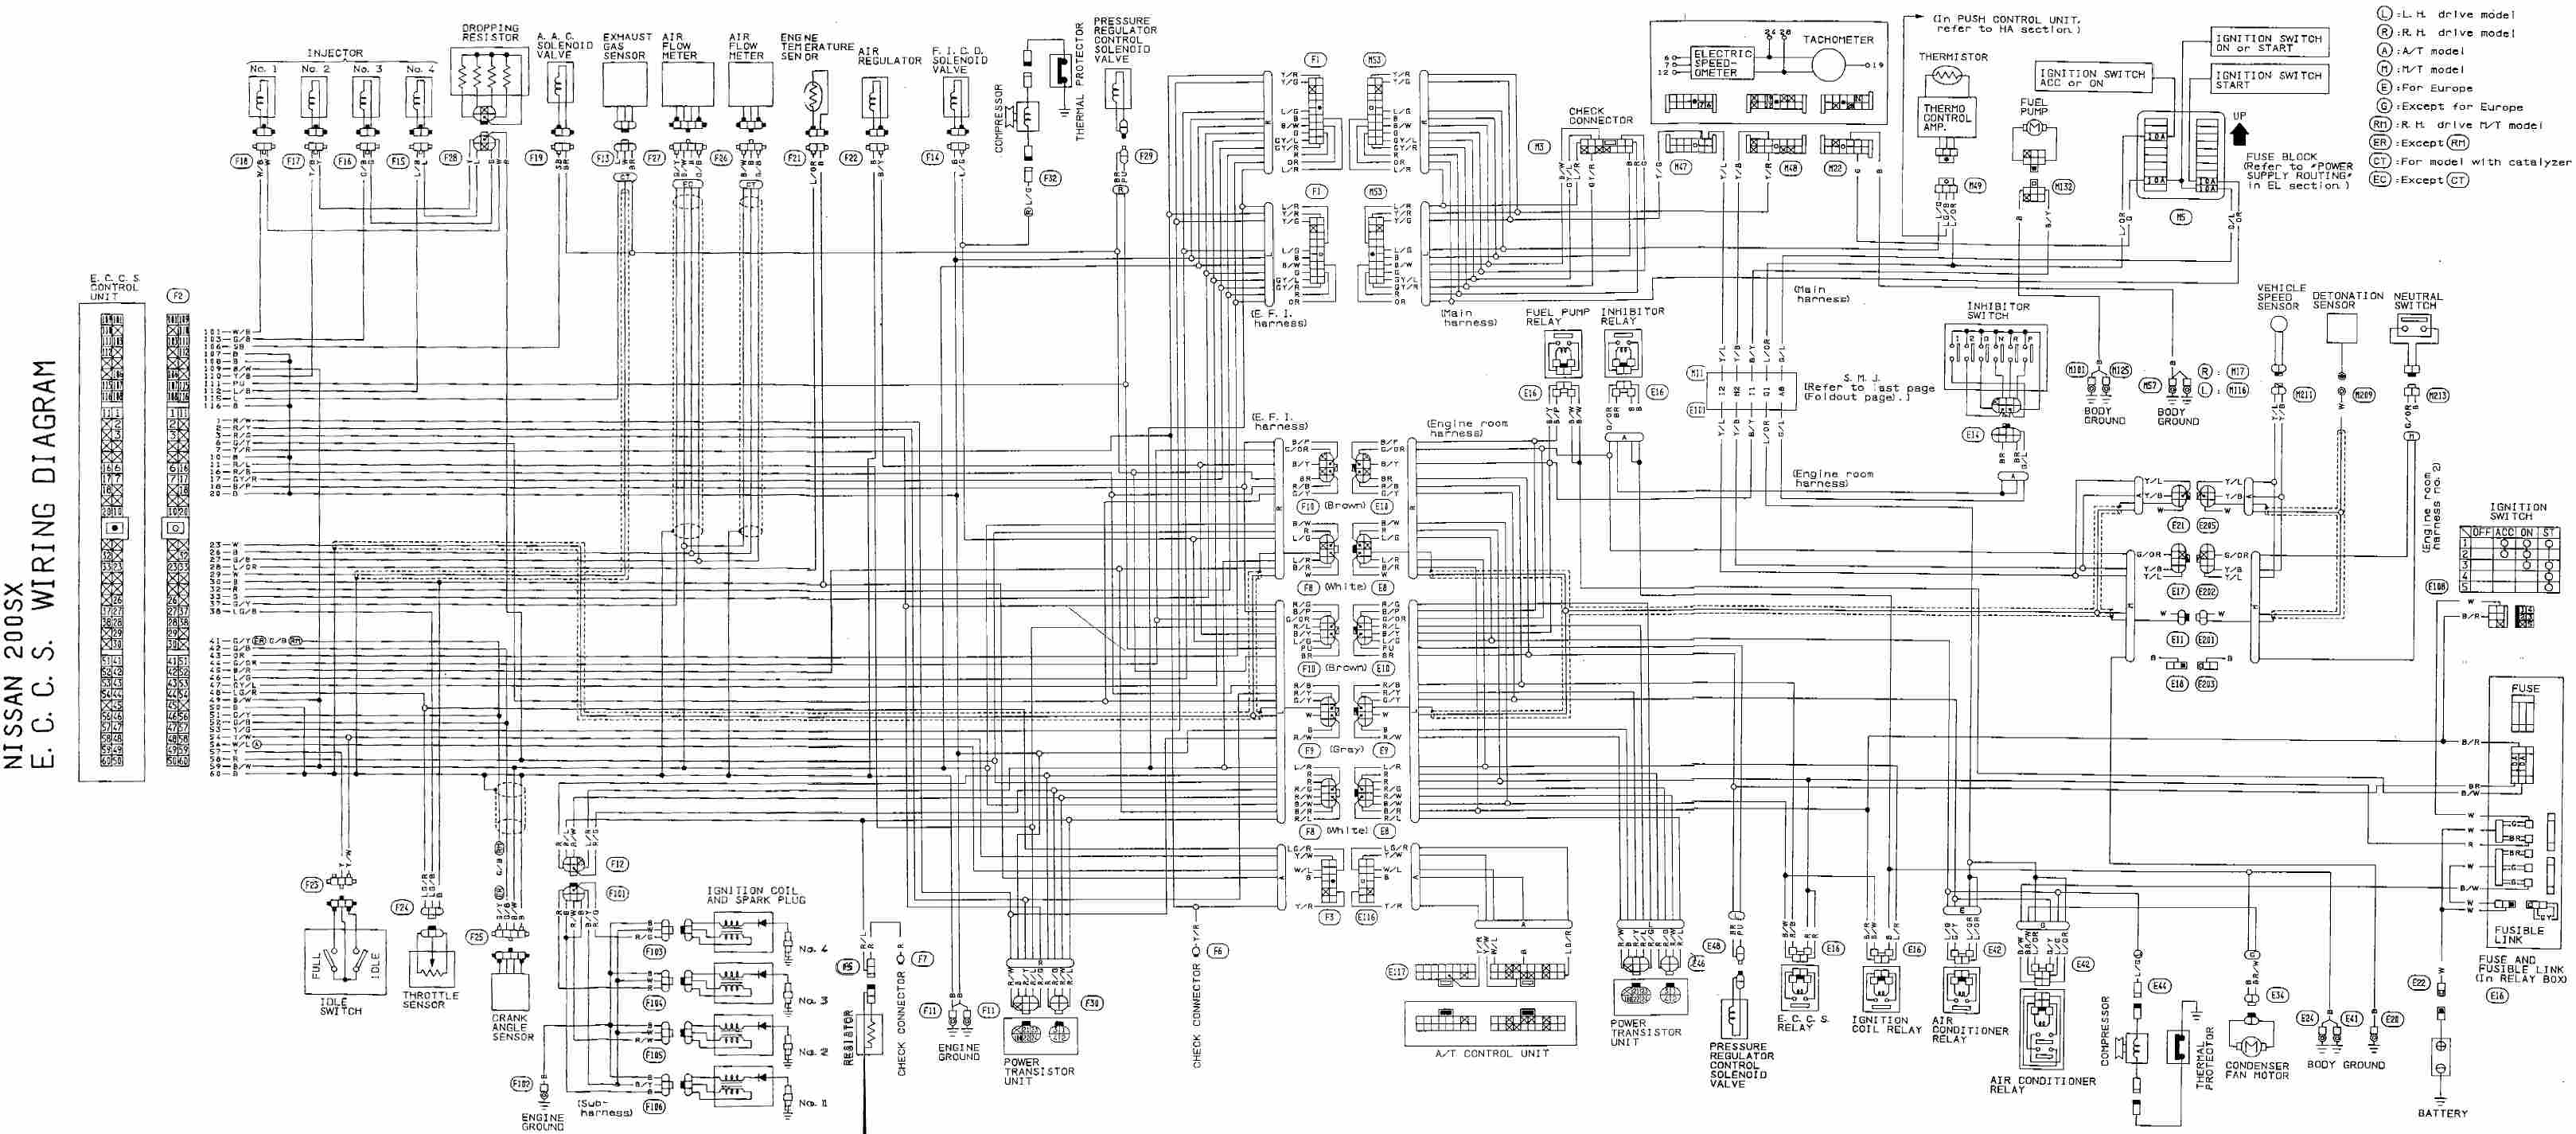 z32 300zx stereo wiring diagram electrical wiring diagrams rh cytrus co